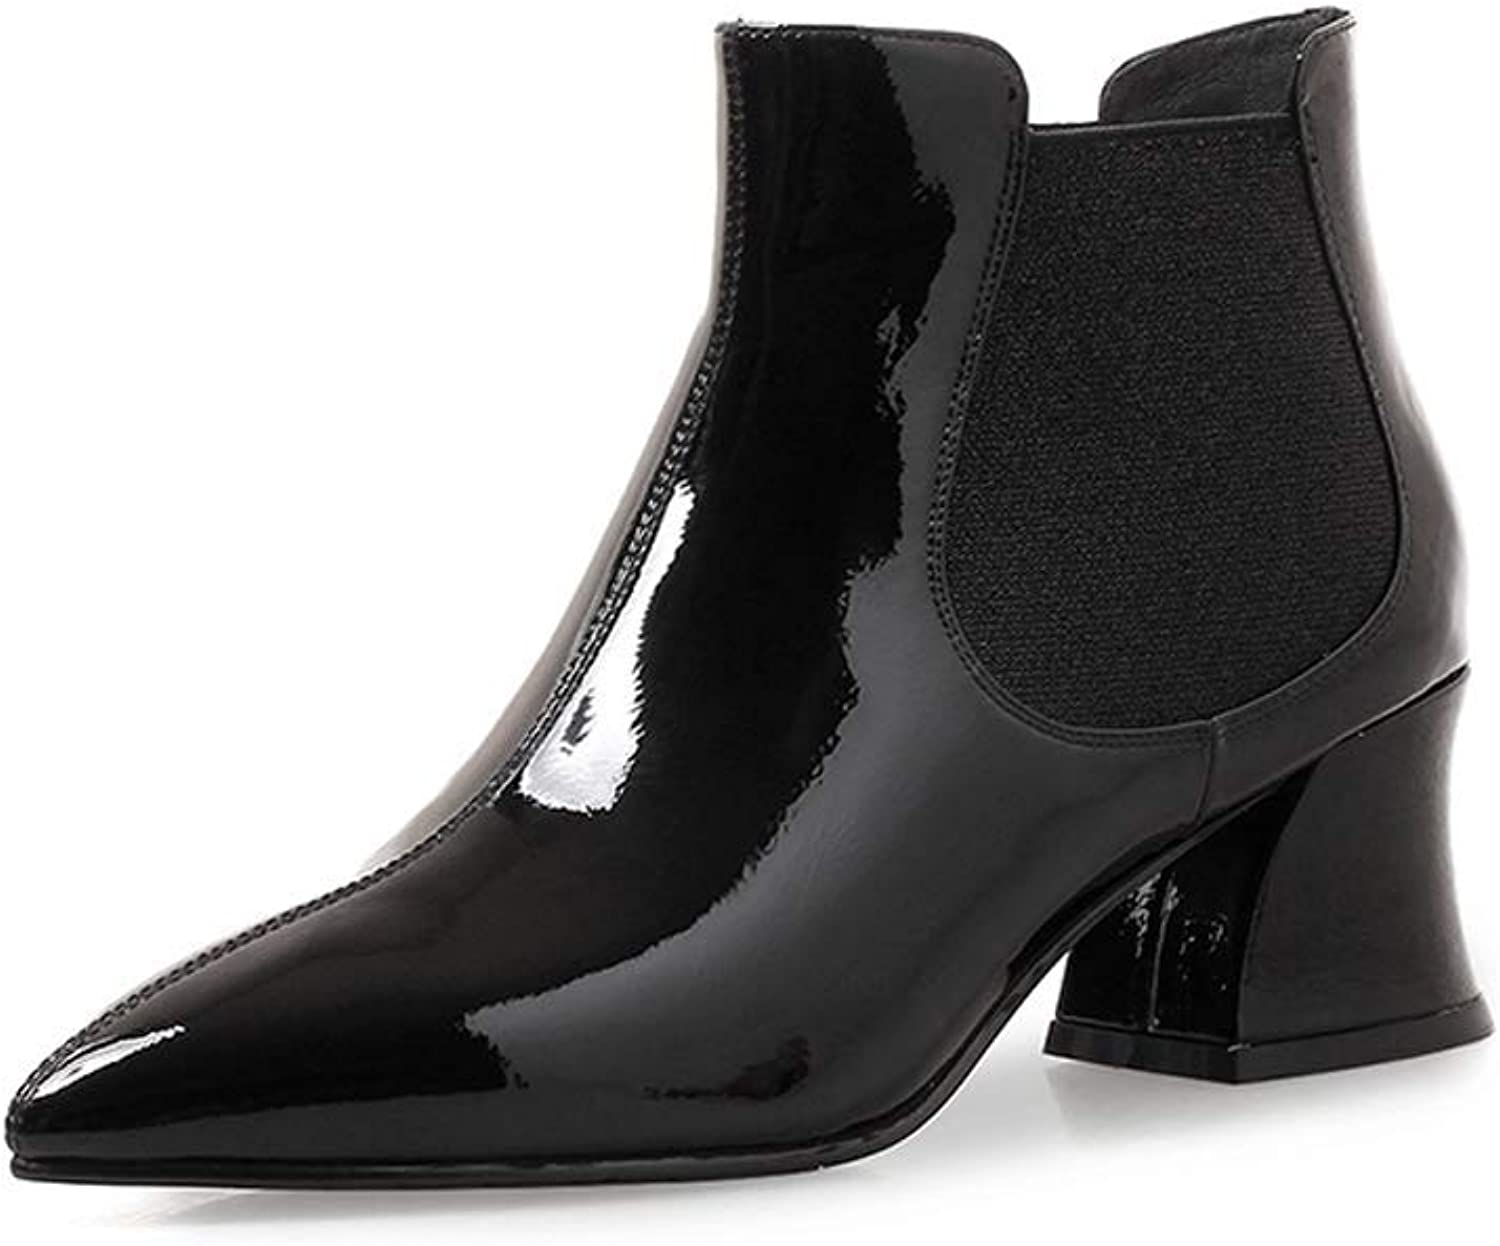 Spring and Autumn New Leather Small Heel Boots Women's Patent Leather Slim Short Tube Flat Boots Bright Leather Black Red Martin Boots Old shoesmaker Handmade (color   Black, Size   34)